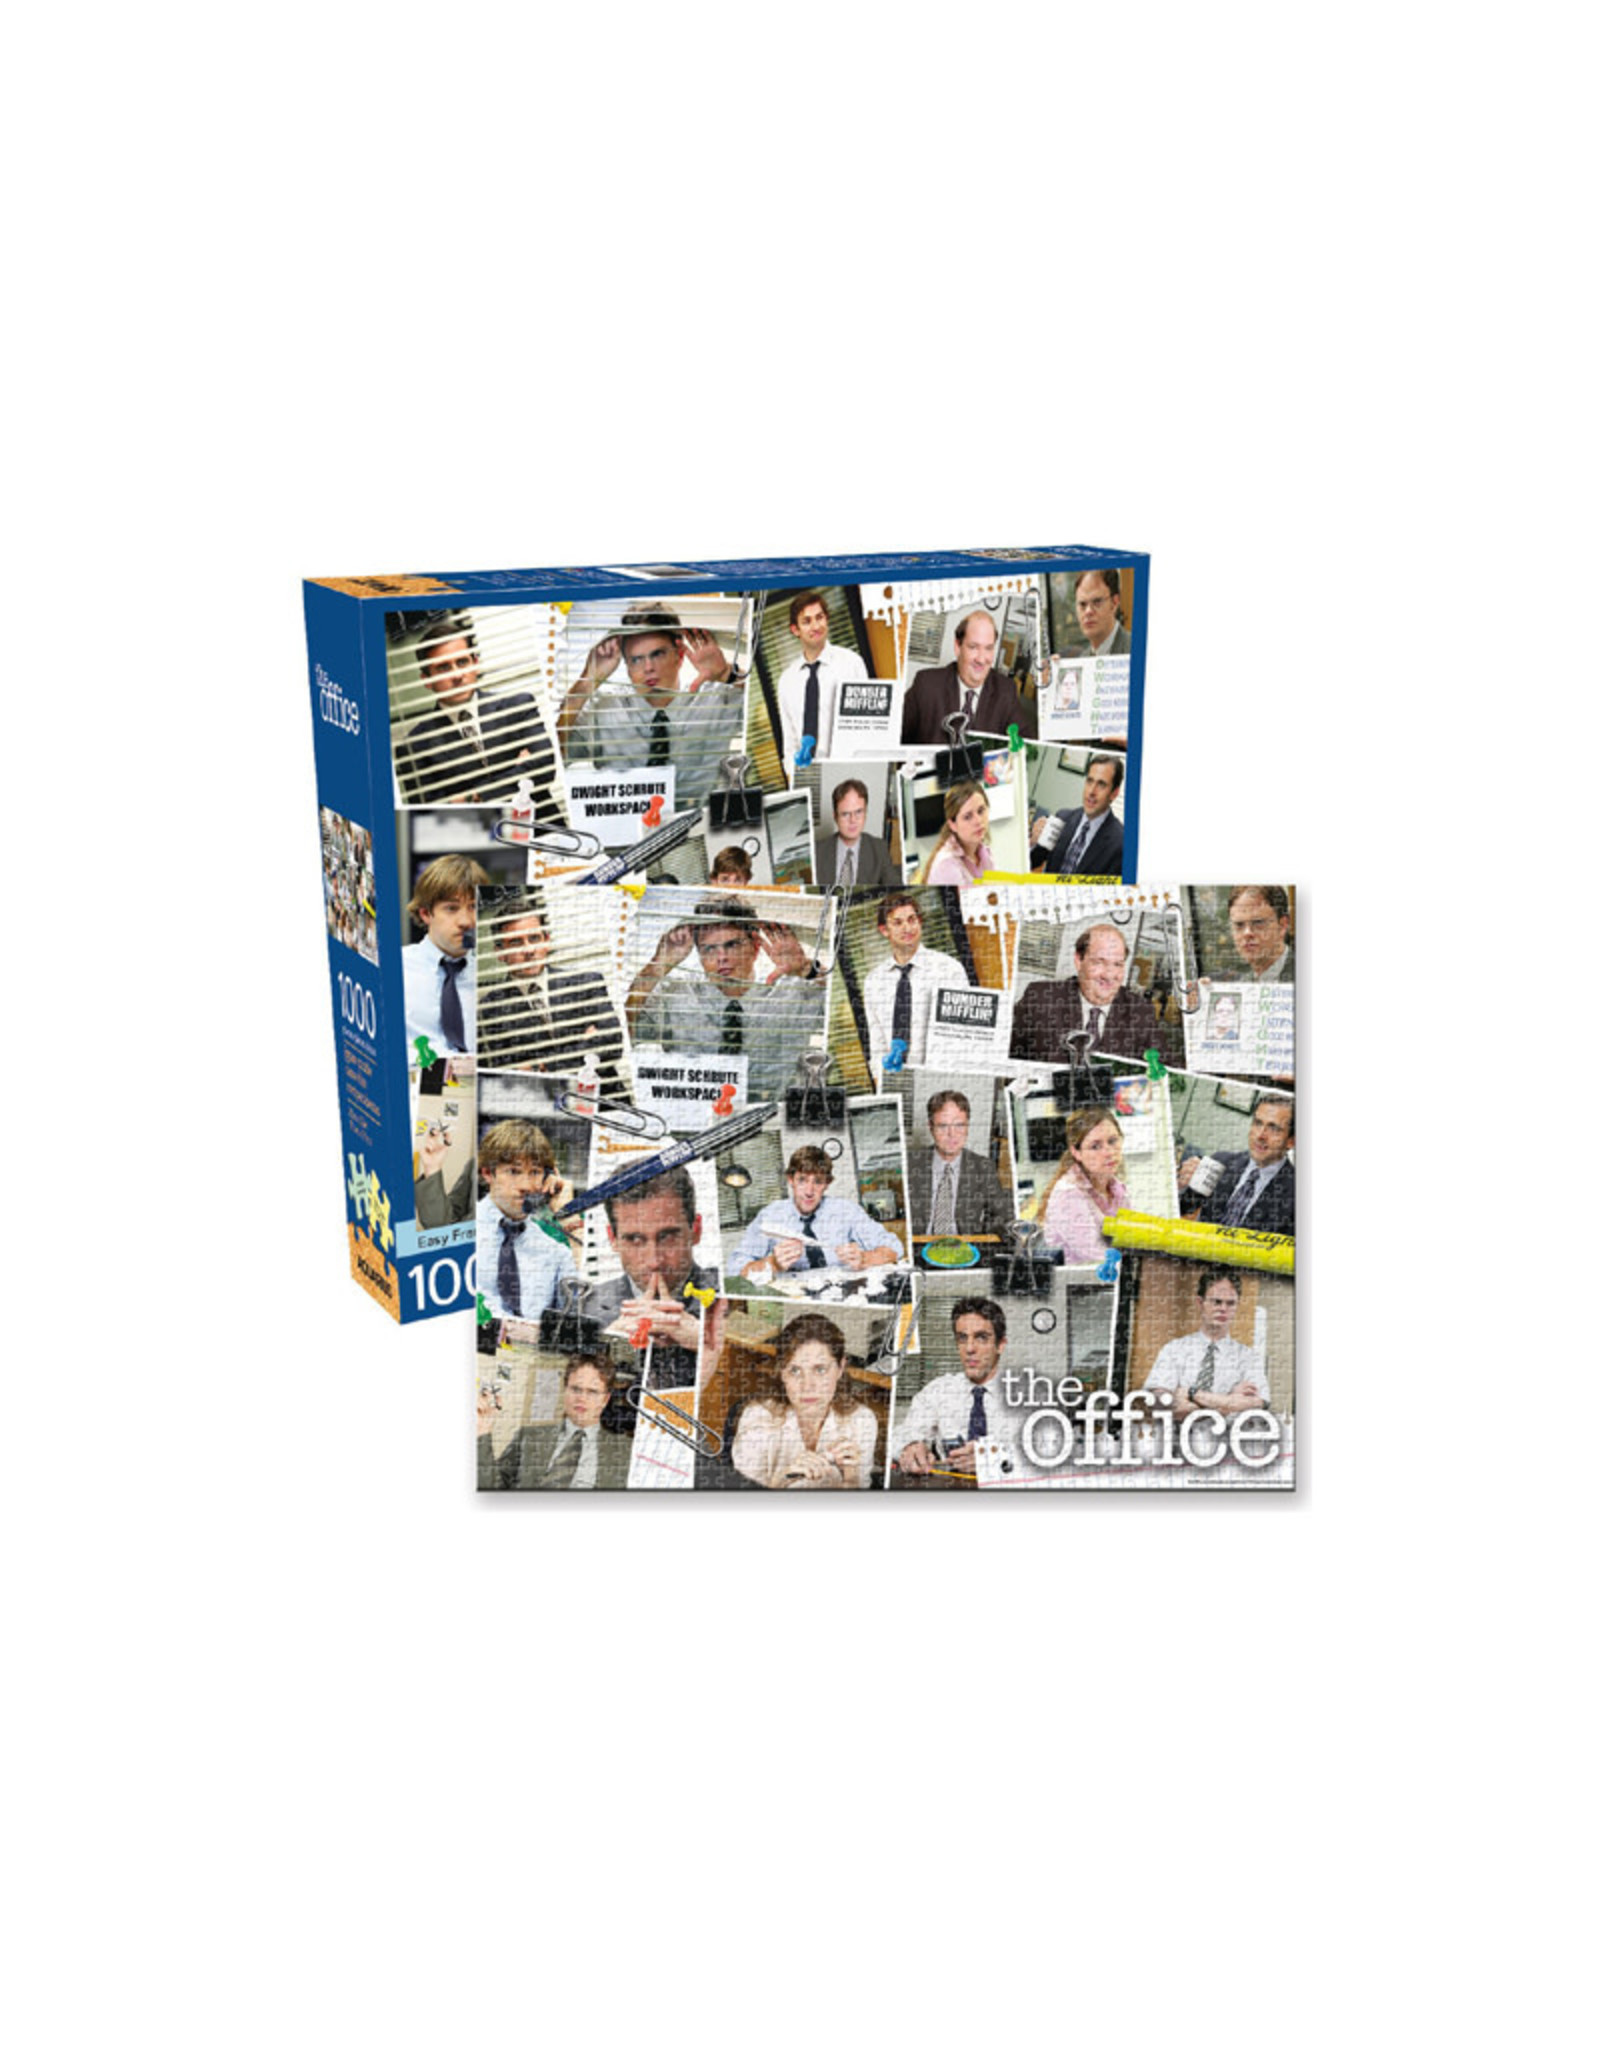 The Office ( Puzzle ) Pictures